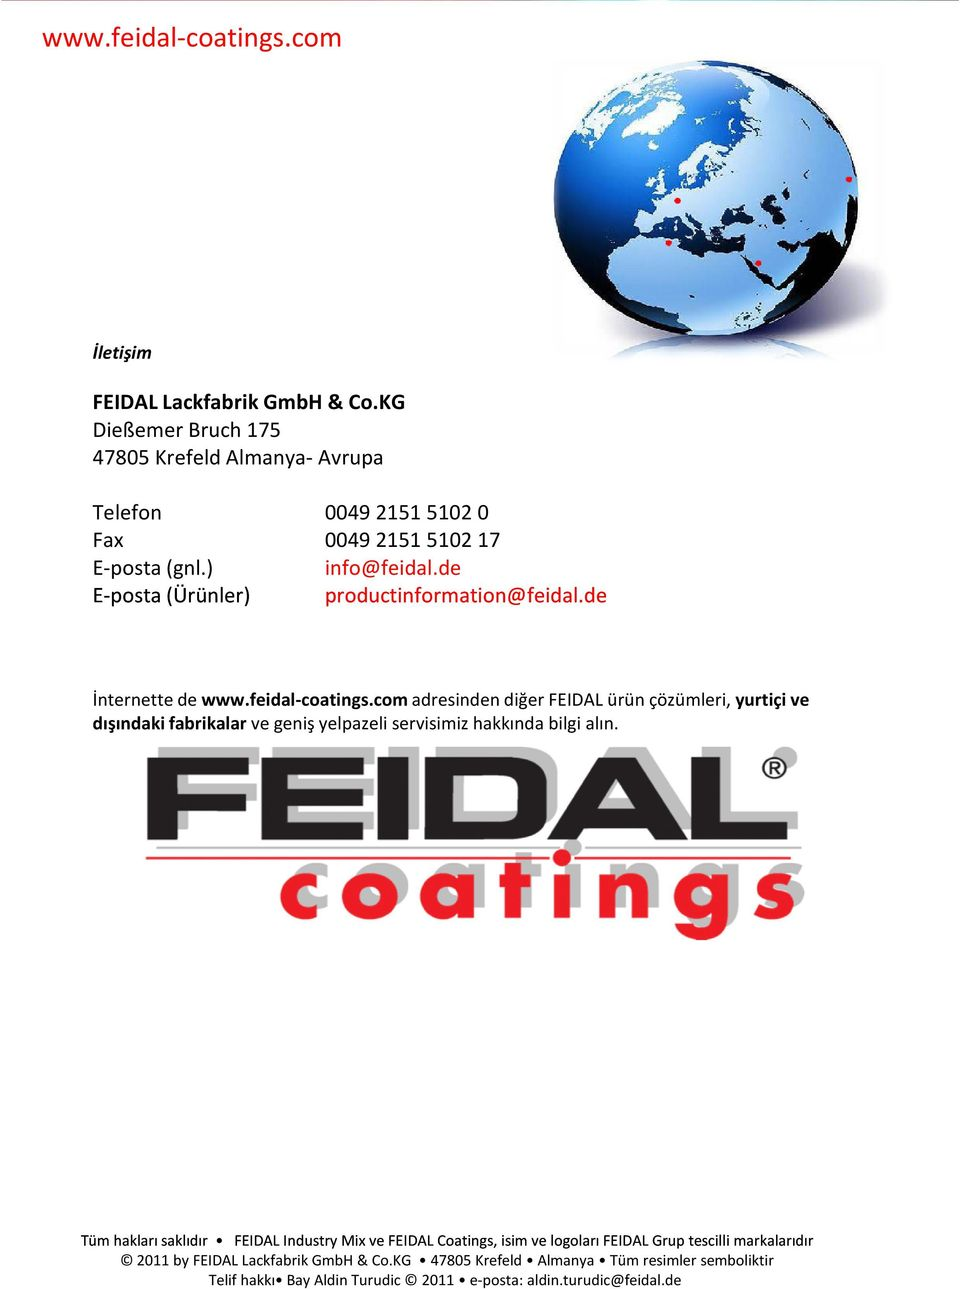 de E-posta (Ürünler) productinformation@feidal.de İnternette de www.feidal-coatings.